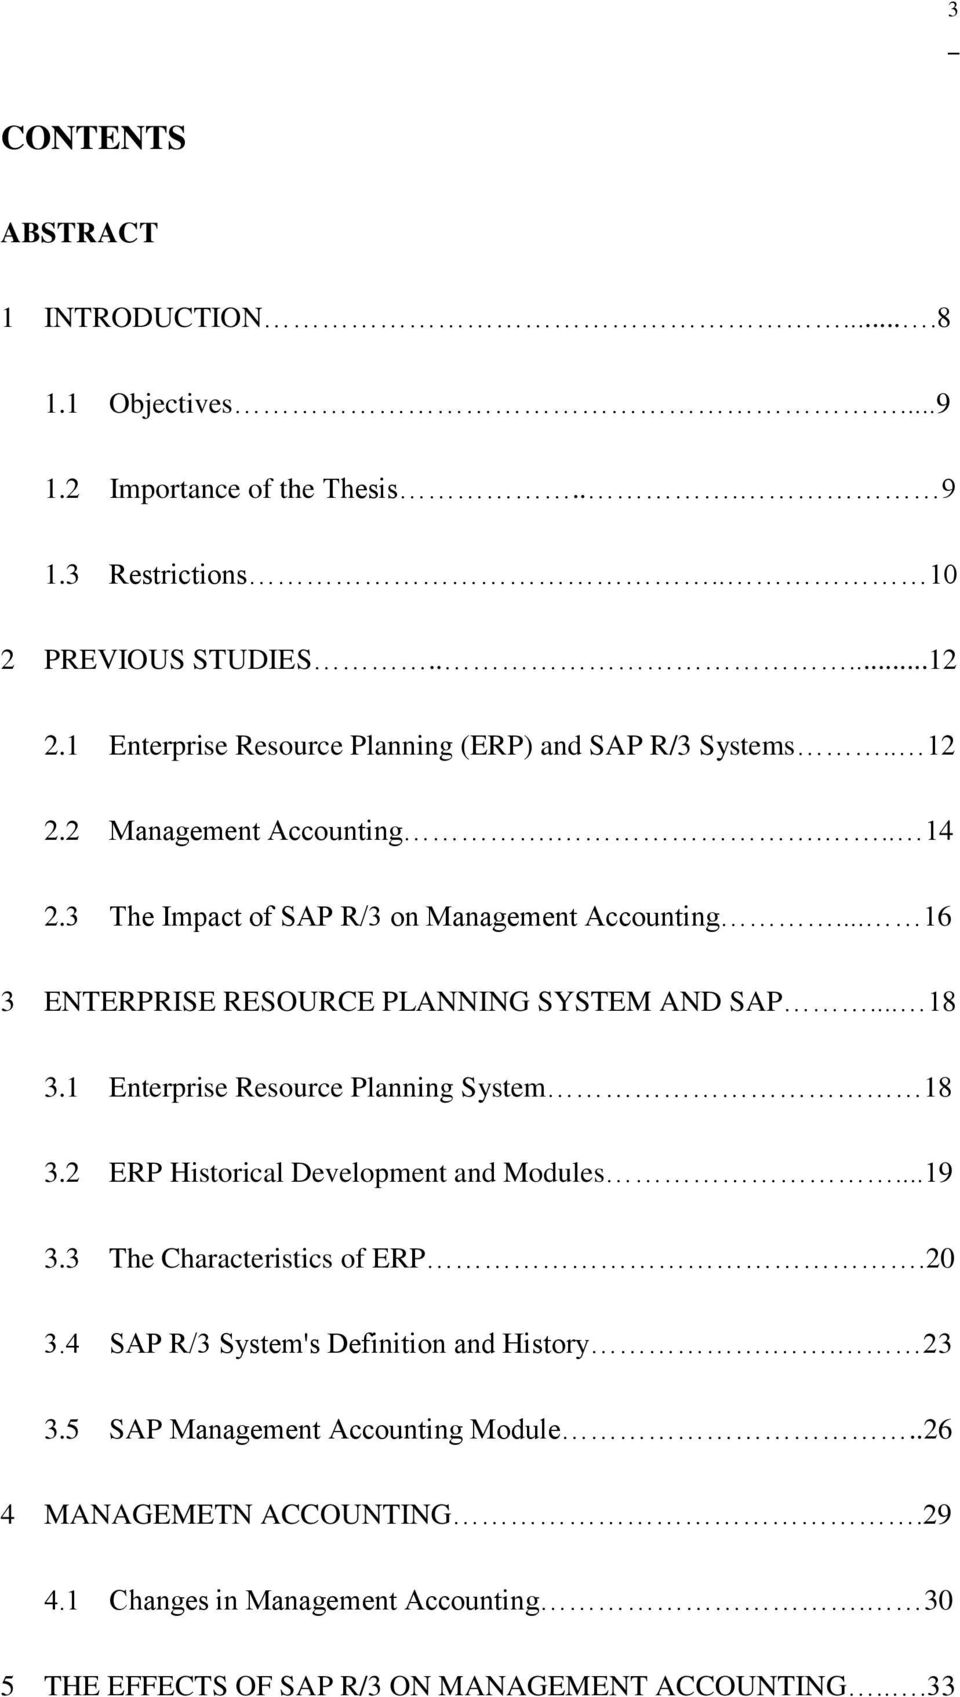 EFFECTS OF IMPLEMENTATION OF SAP ON MANAGEMENT ACCOUNTING